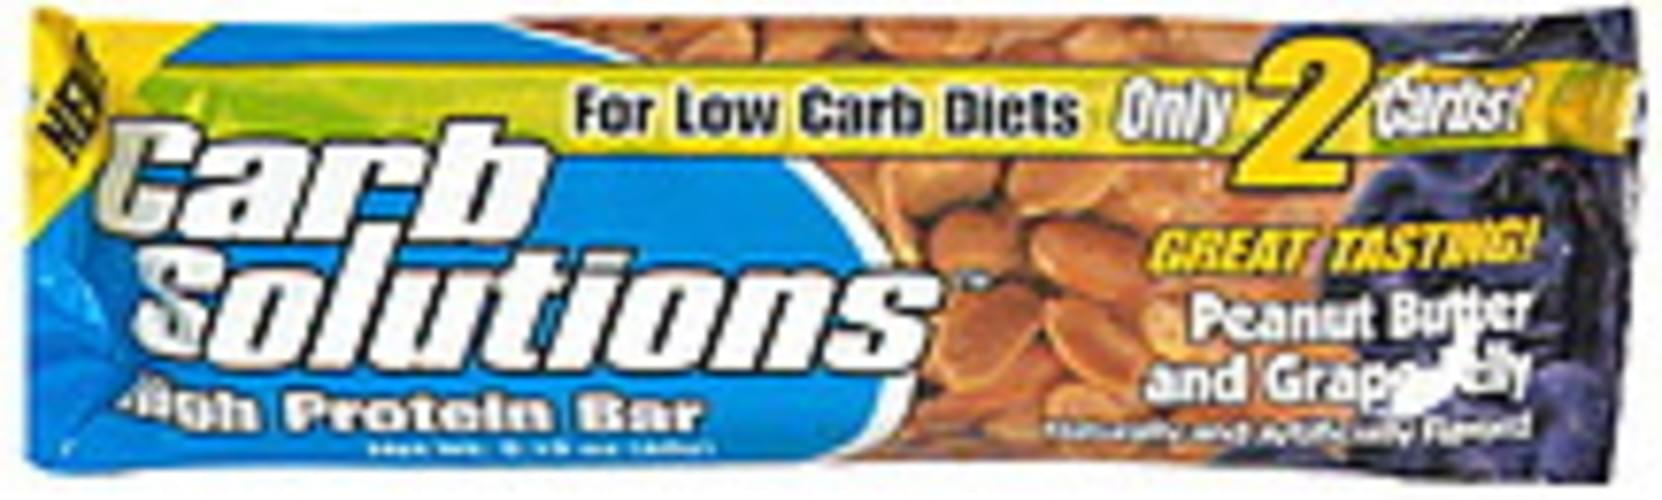 Carb Solutions Peanut Butter and Grape Jelly High Protein Bar - 2.12 oz